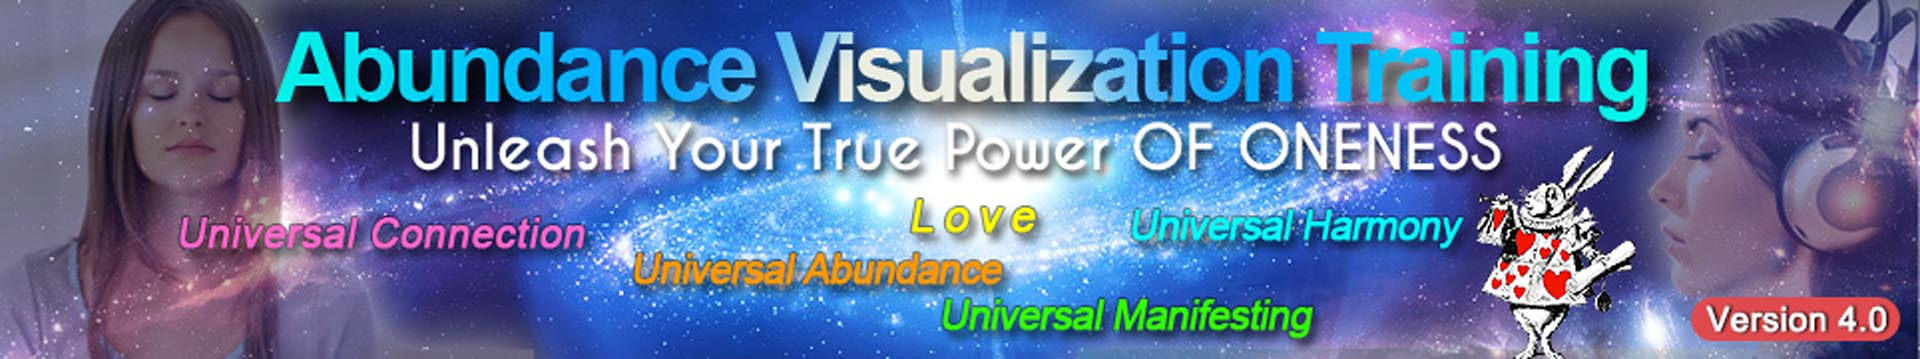 Abundance-Visualization-Training-Unleash-Your-True-Power-Of-Oneness-by-Carl-Bradbrook-Header-2